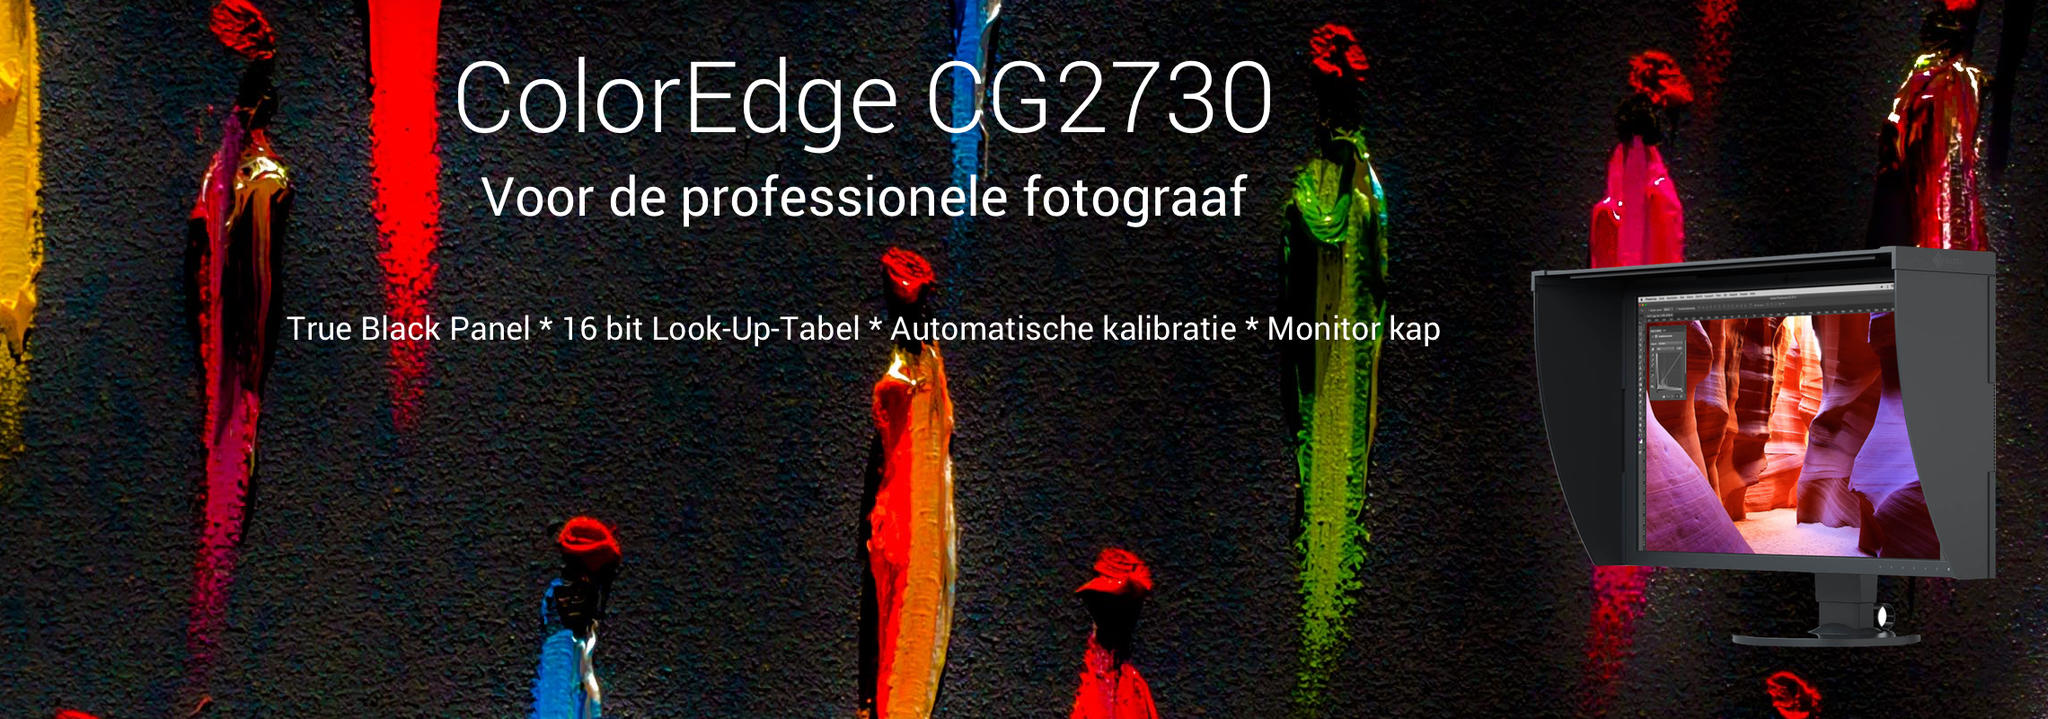 Professional Imaging Kortings dagen